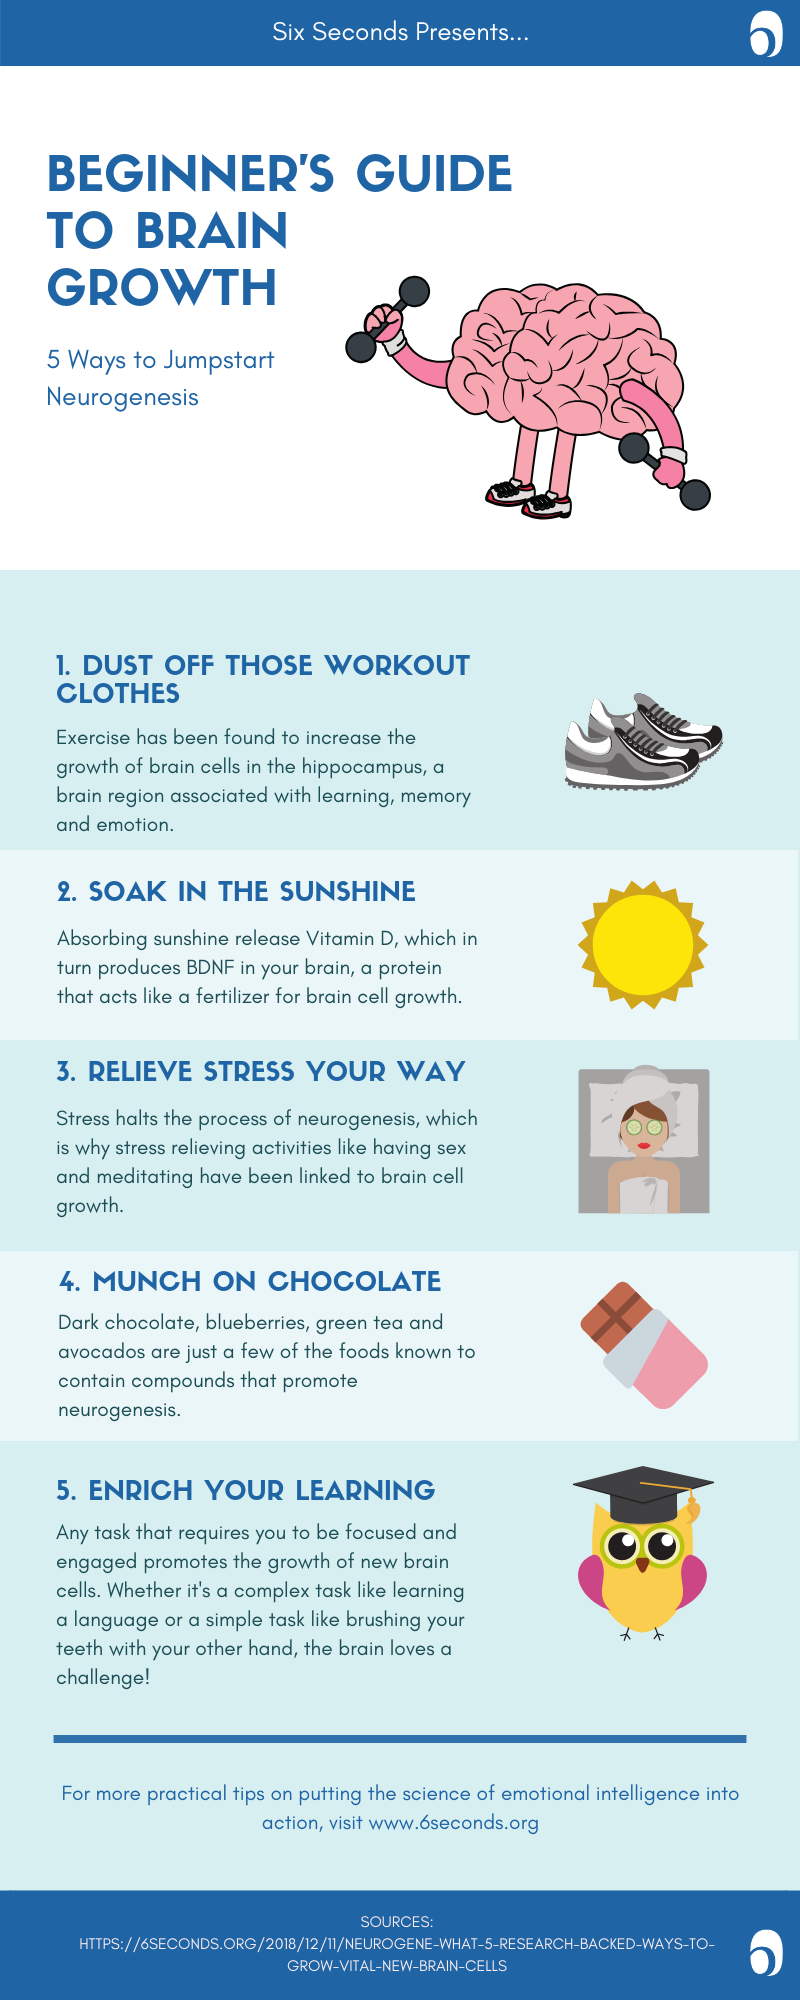 Staying Sharp: 5 Ways to Boost Your Brain Power • Six Seconds